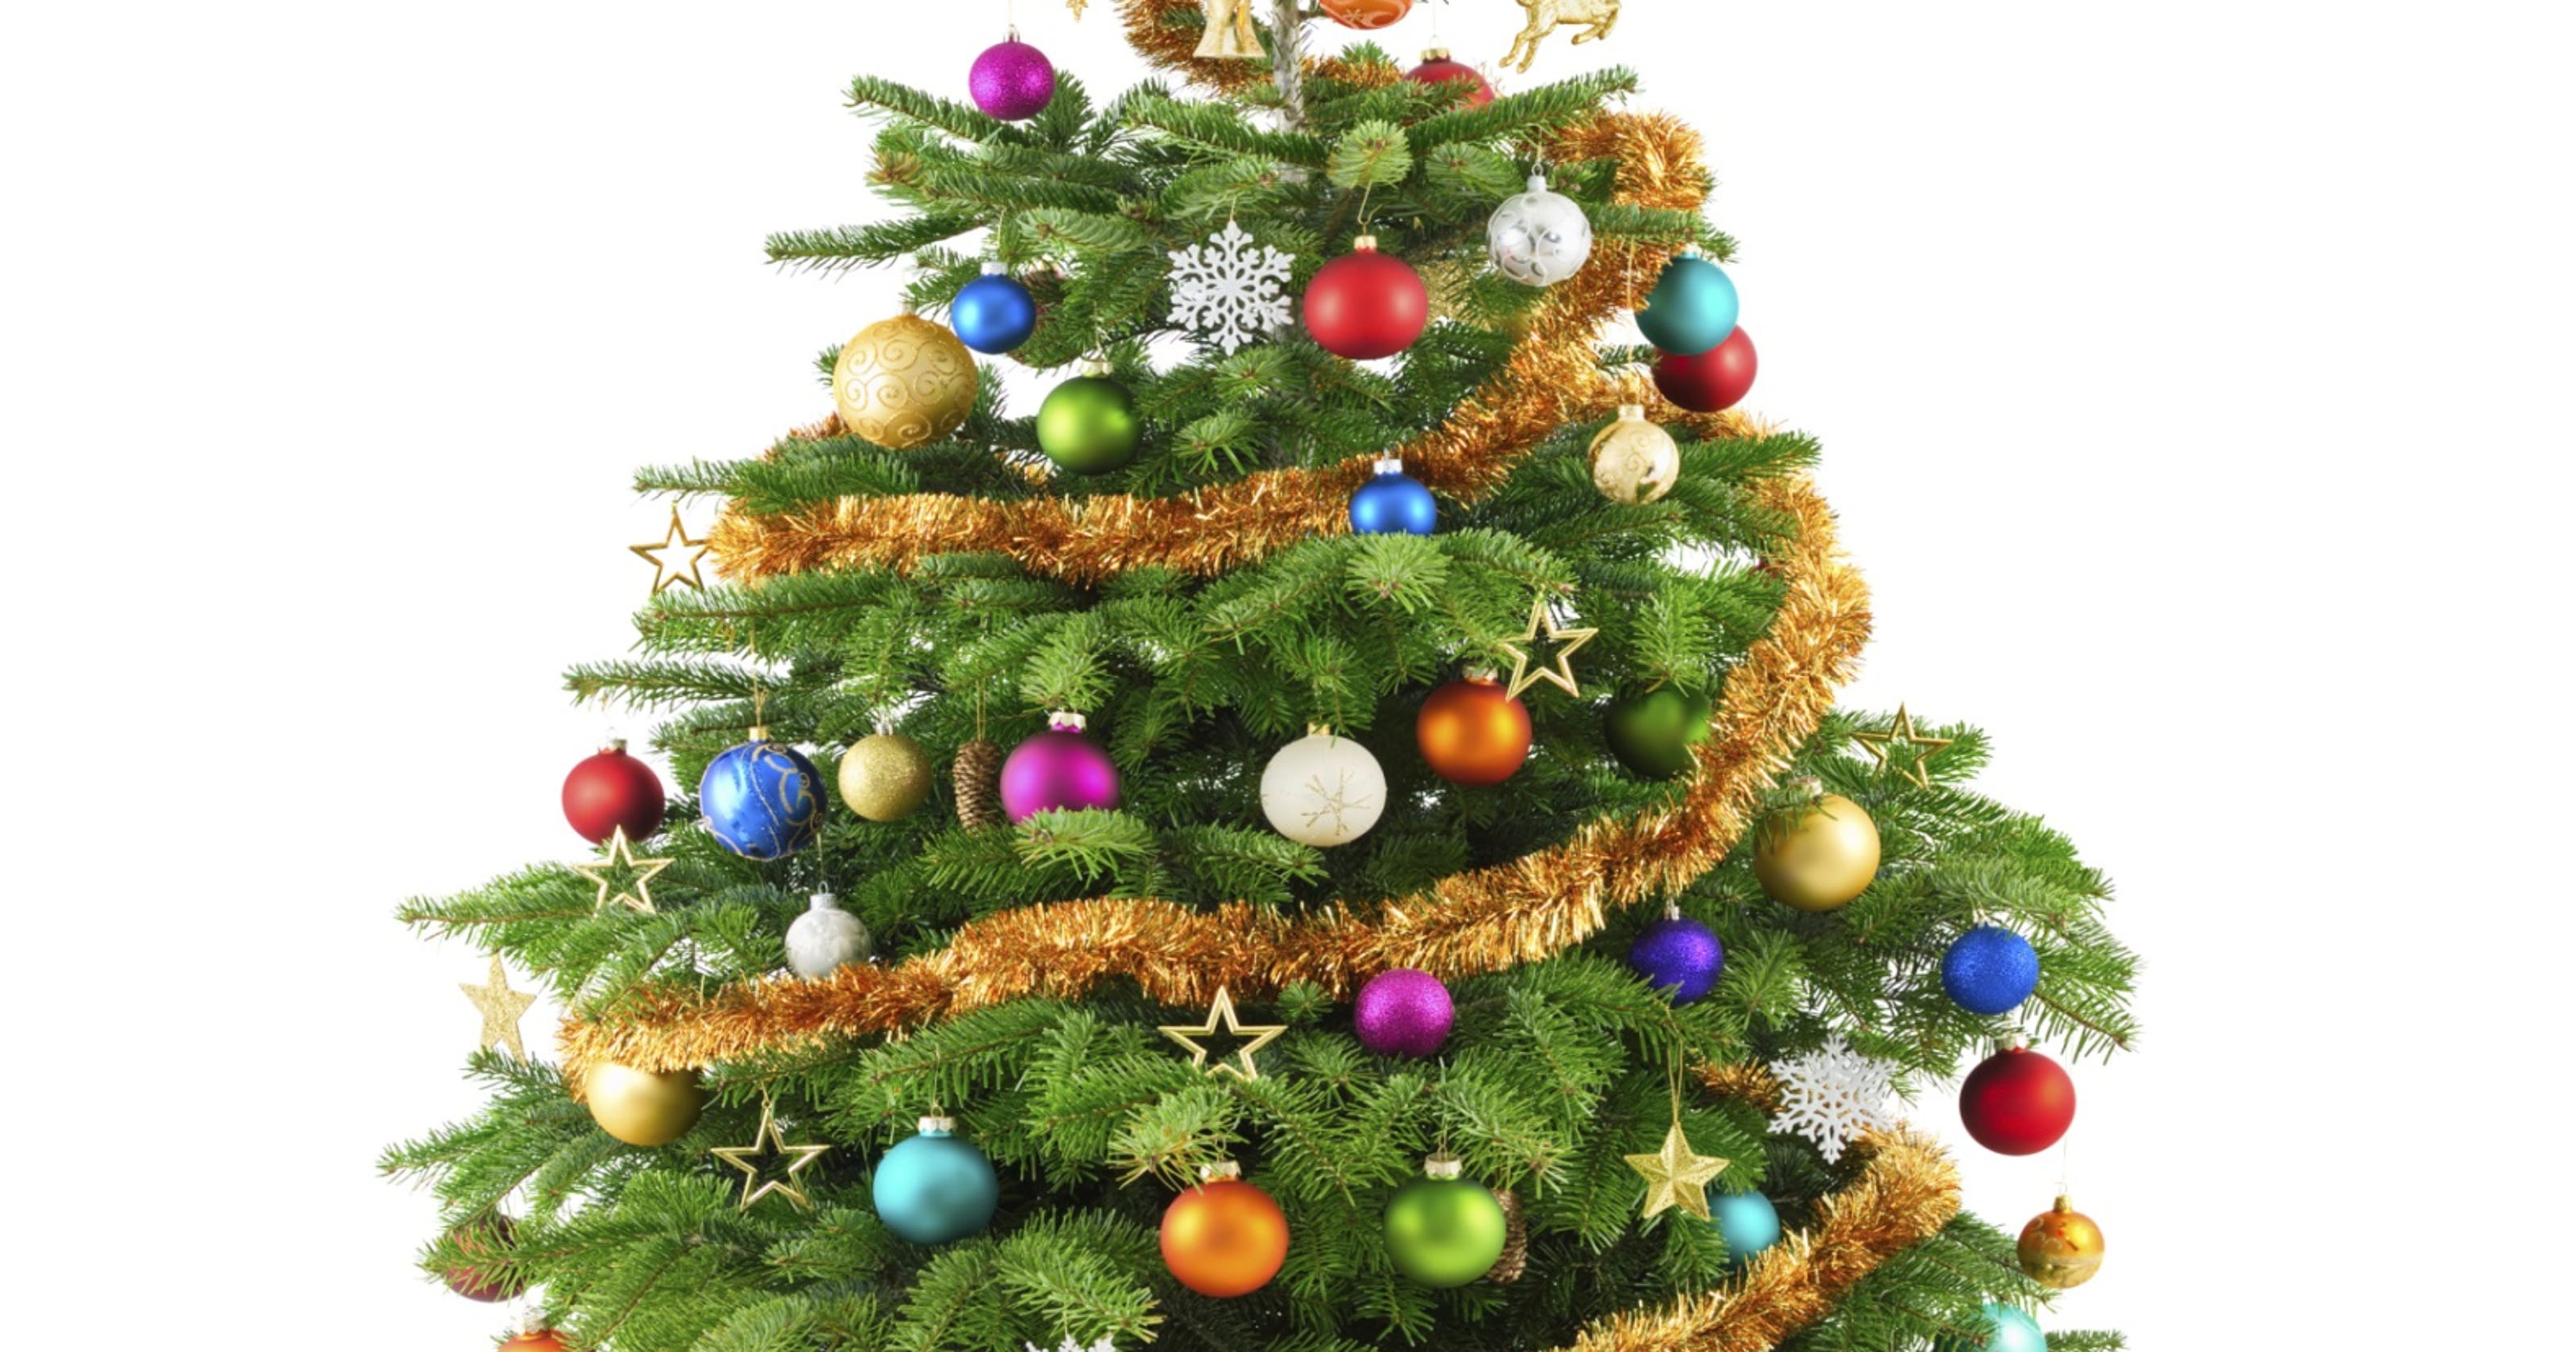 Get a real Christmas tree in or near Cheatham County